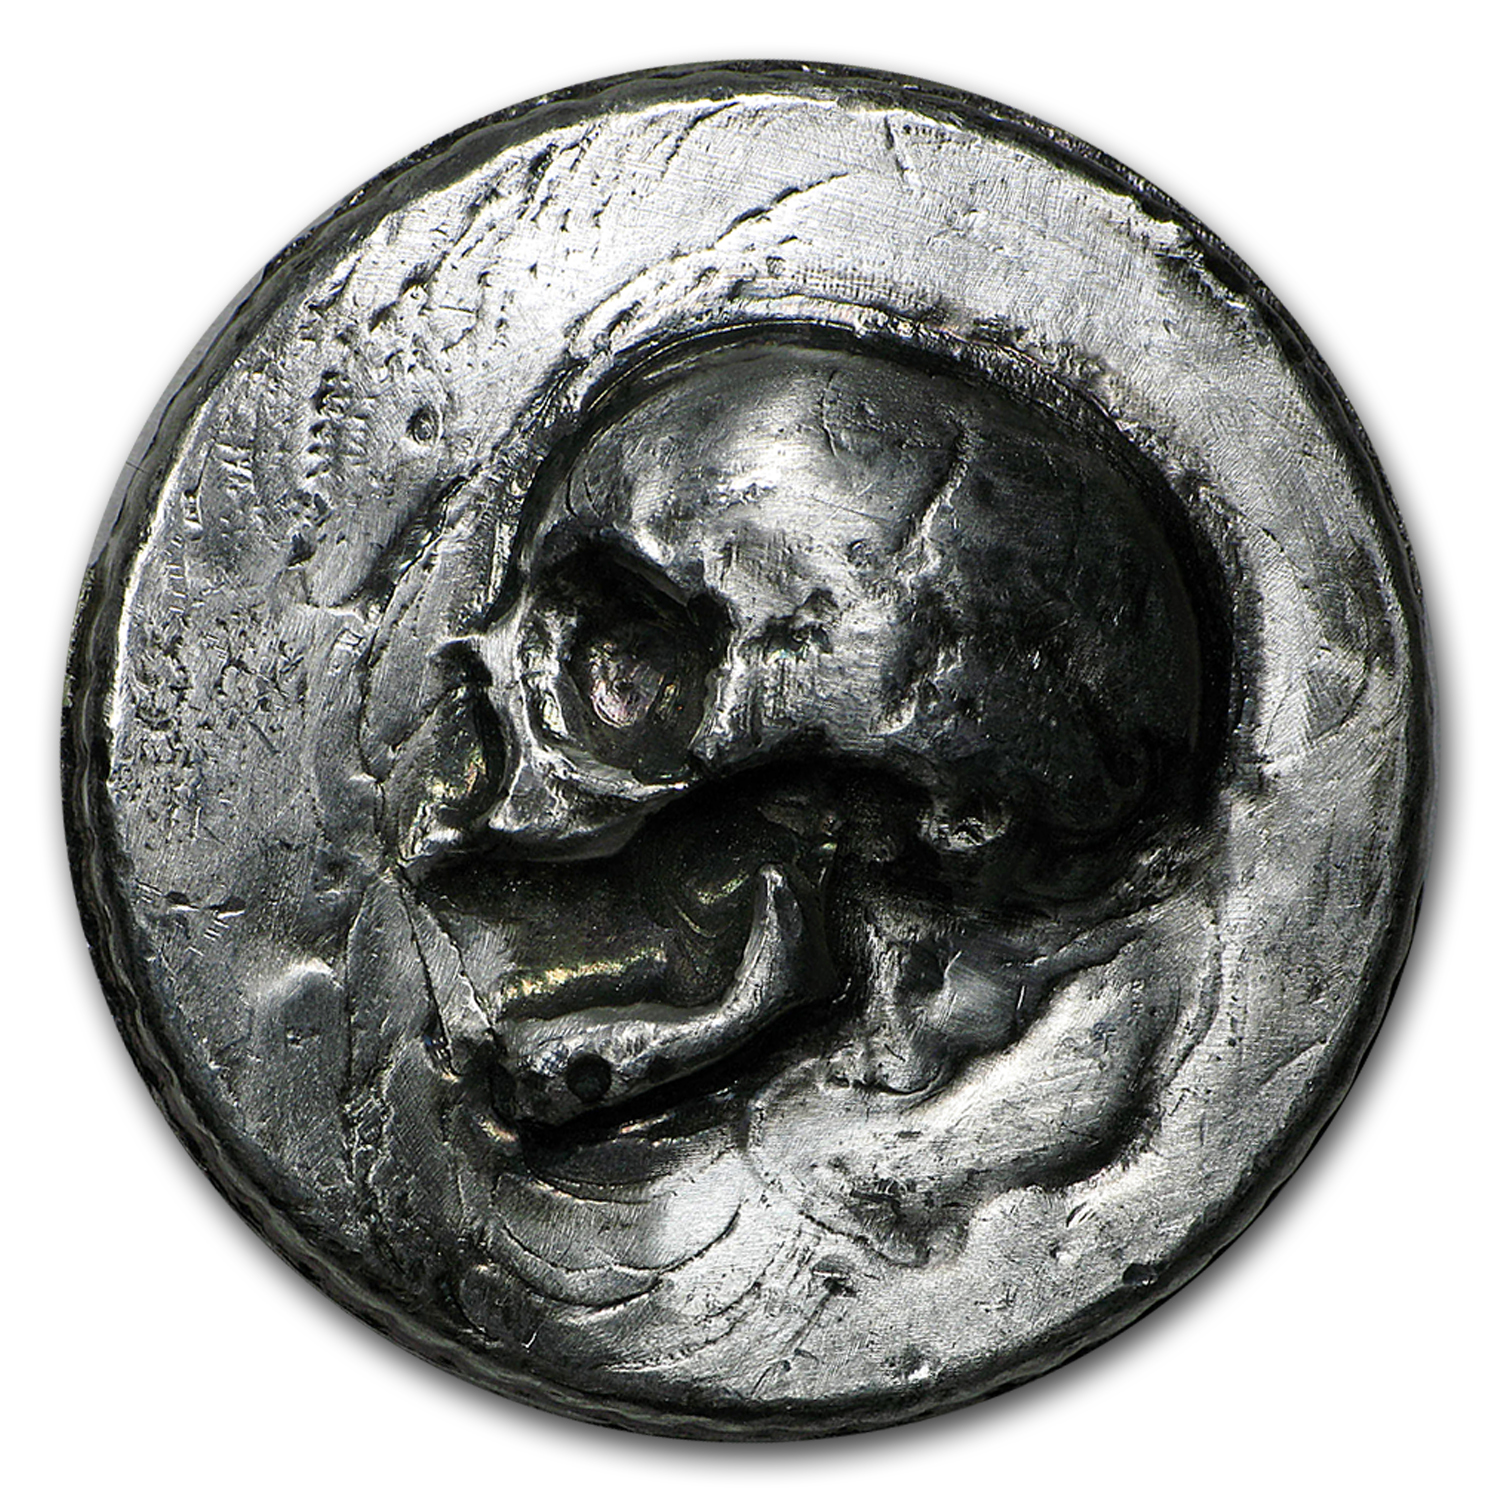 3 oz Silver Ultra High Relief Round - MK Barz & Bullion (Skull)